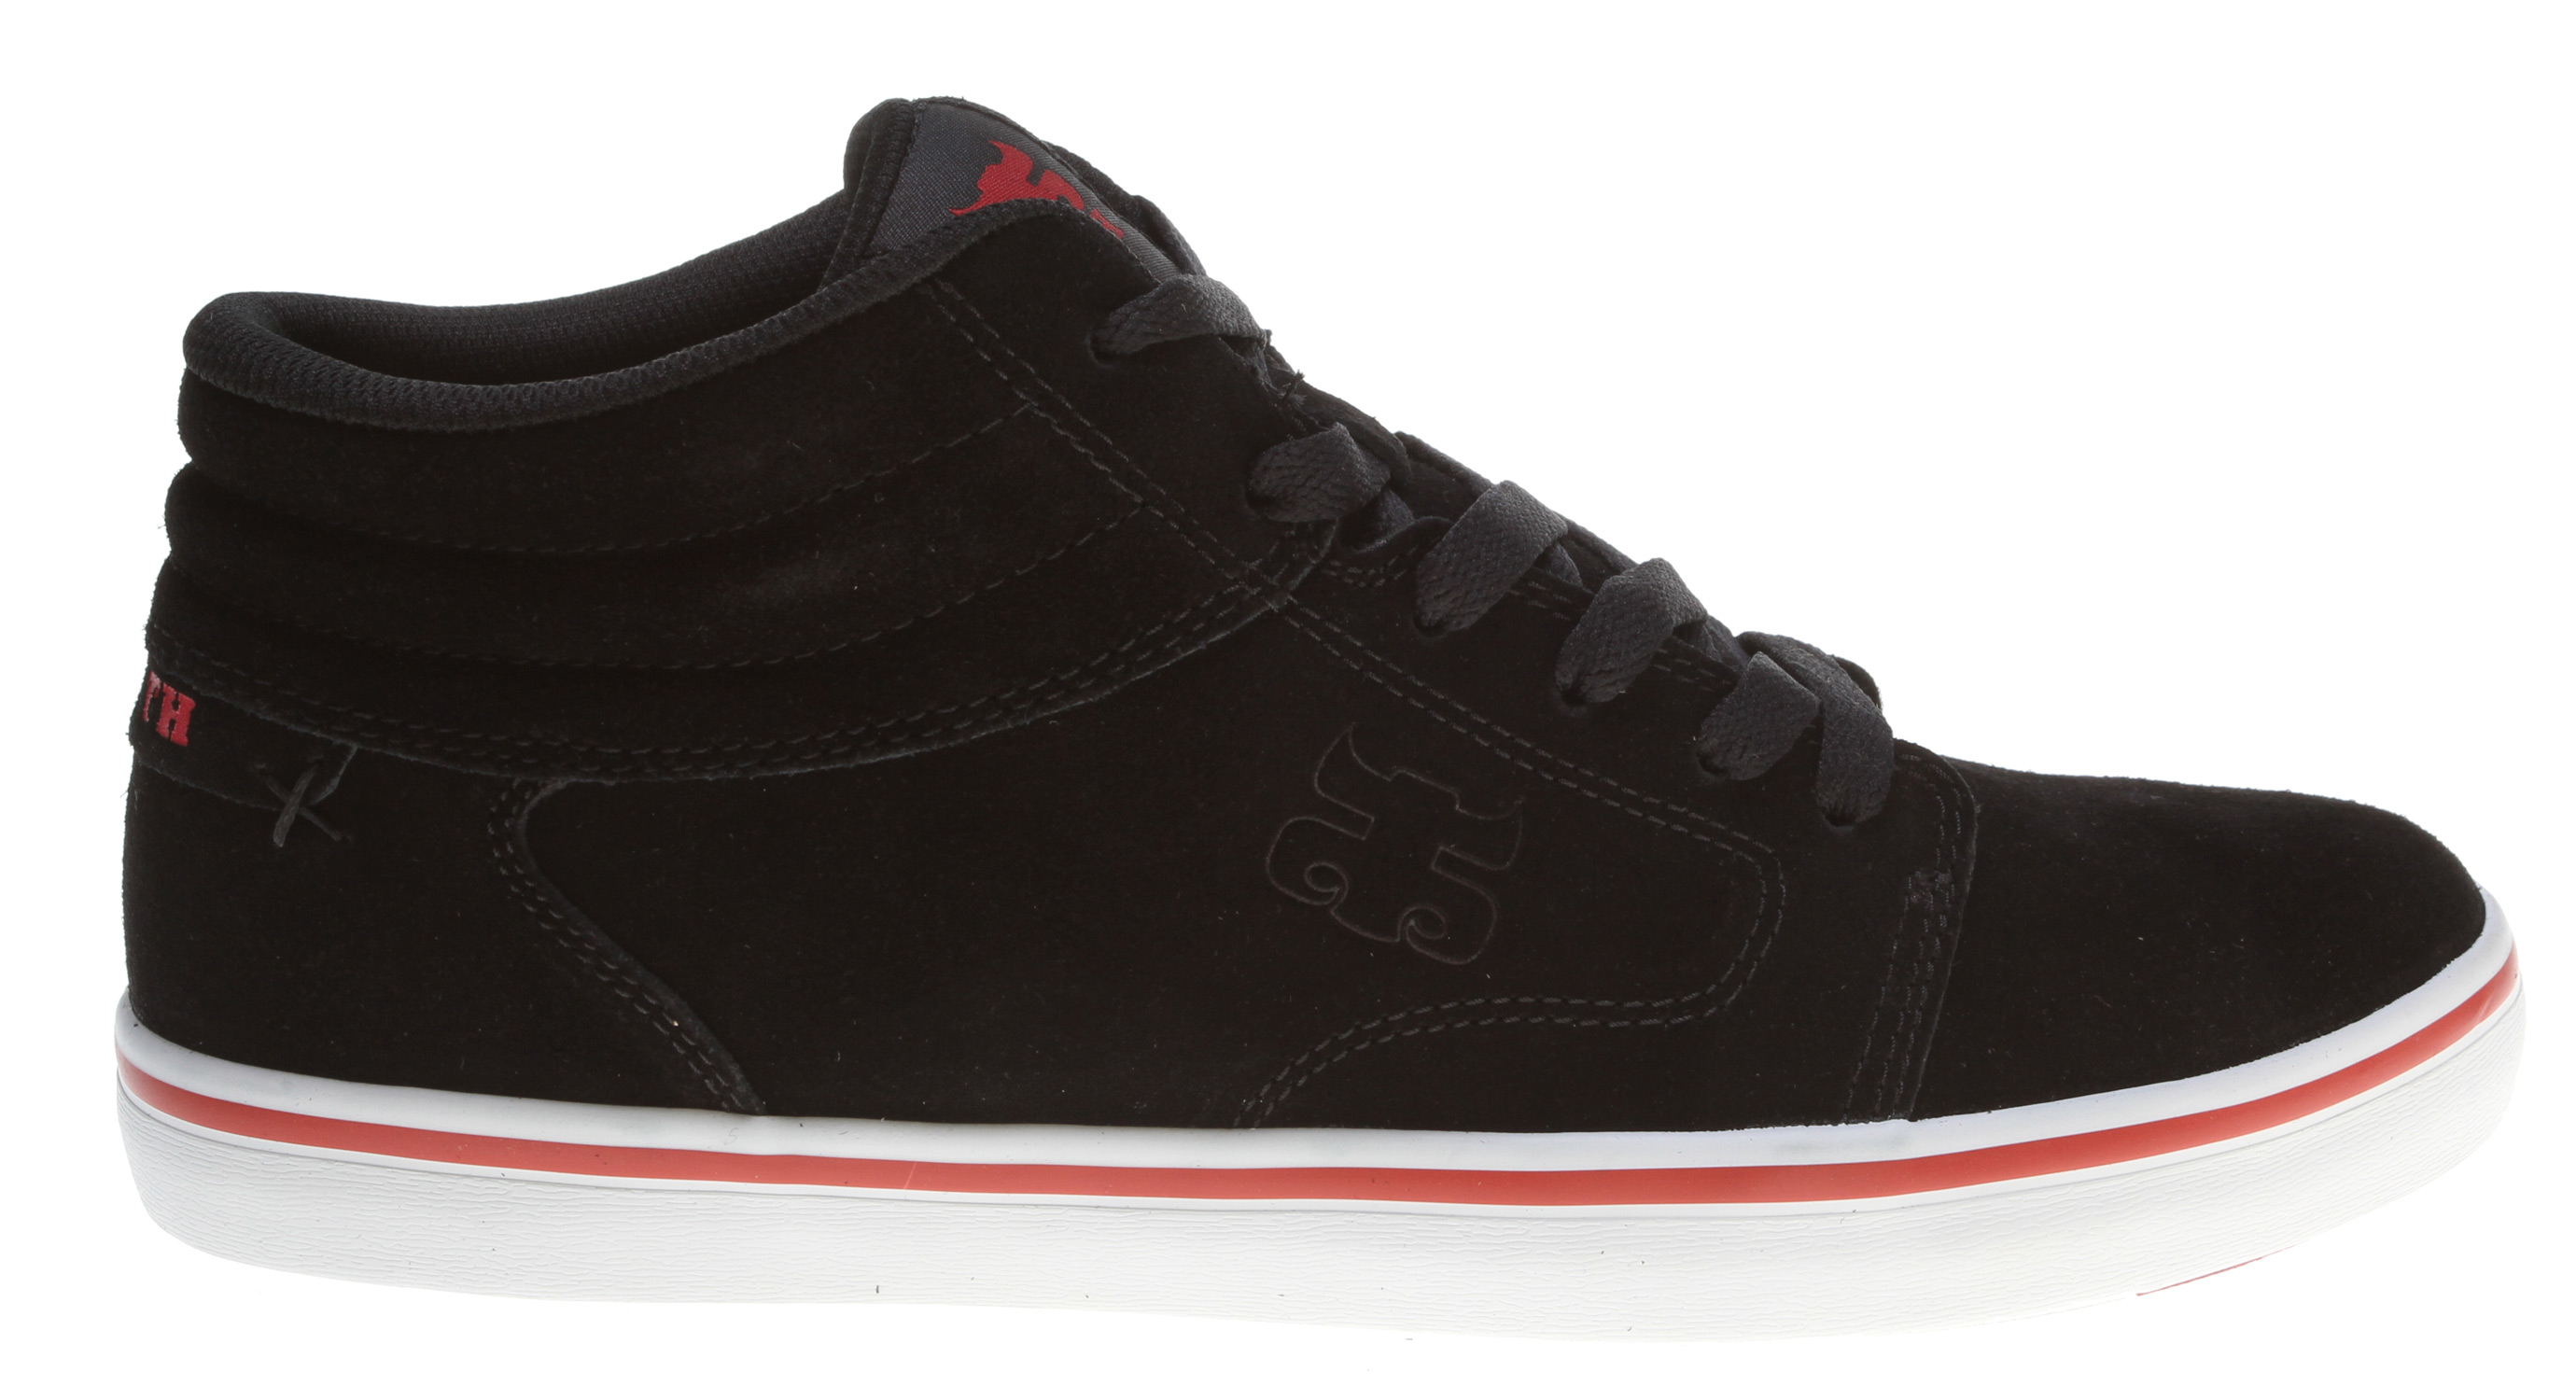 Skateboard The Stash Mid is everything a skate shoe should be, featuring a clean seamless toe with mid-top cut for ankle support and a classic vulc outsole. The Stash Mid comes complete with stash pocket and cross stich detail. - $51.95